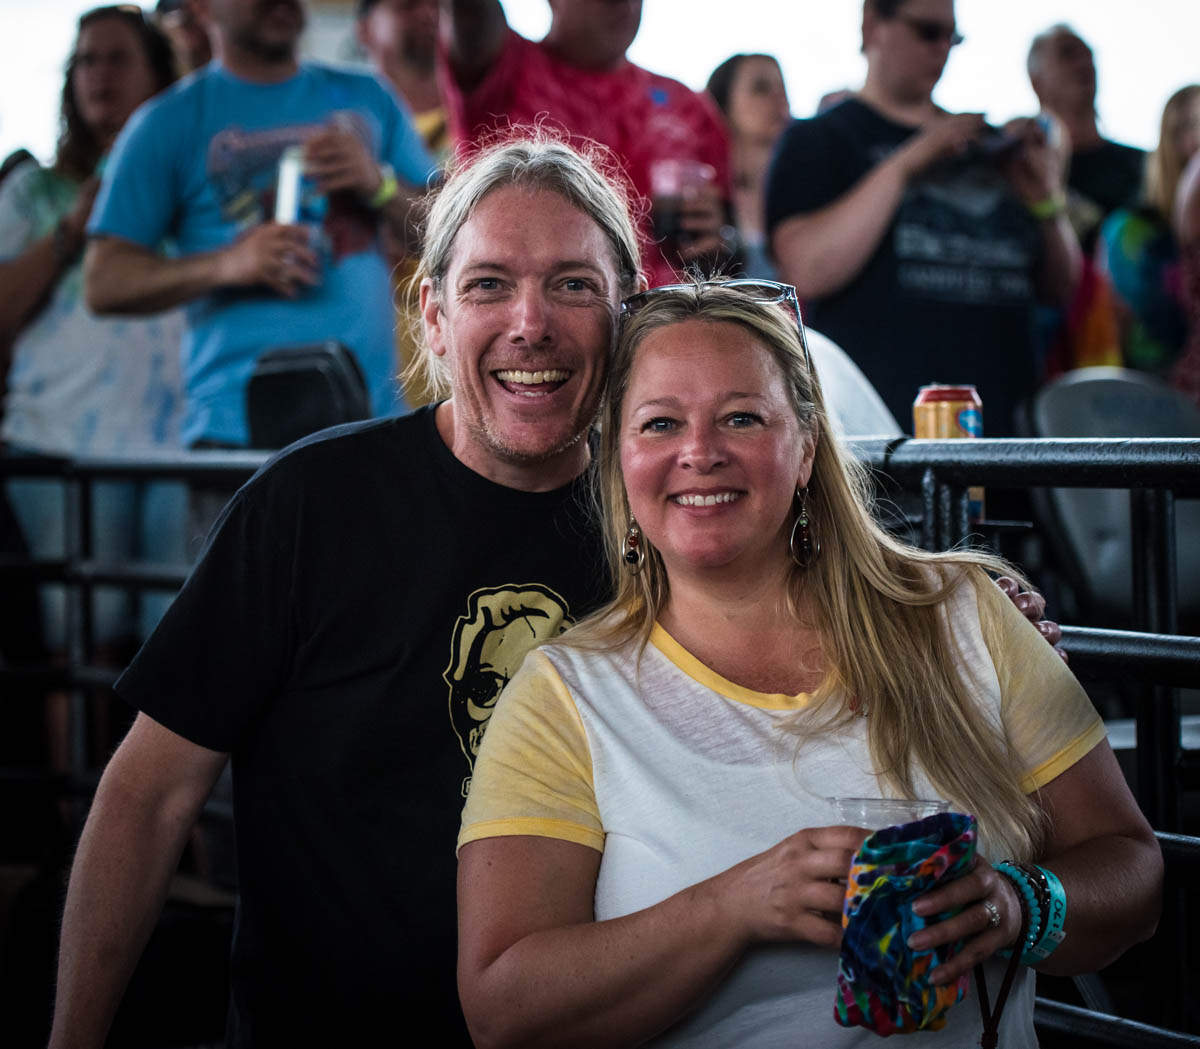 Dead & Co. fans are always so happy! #Siblings